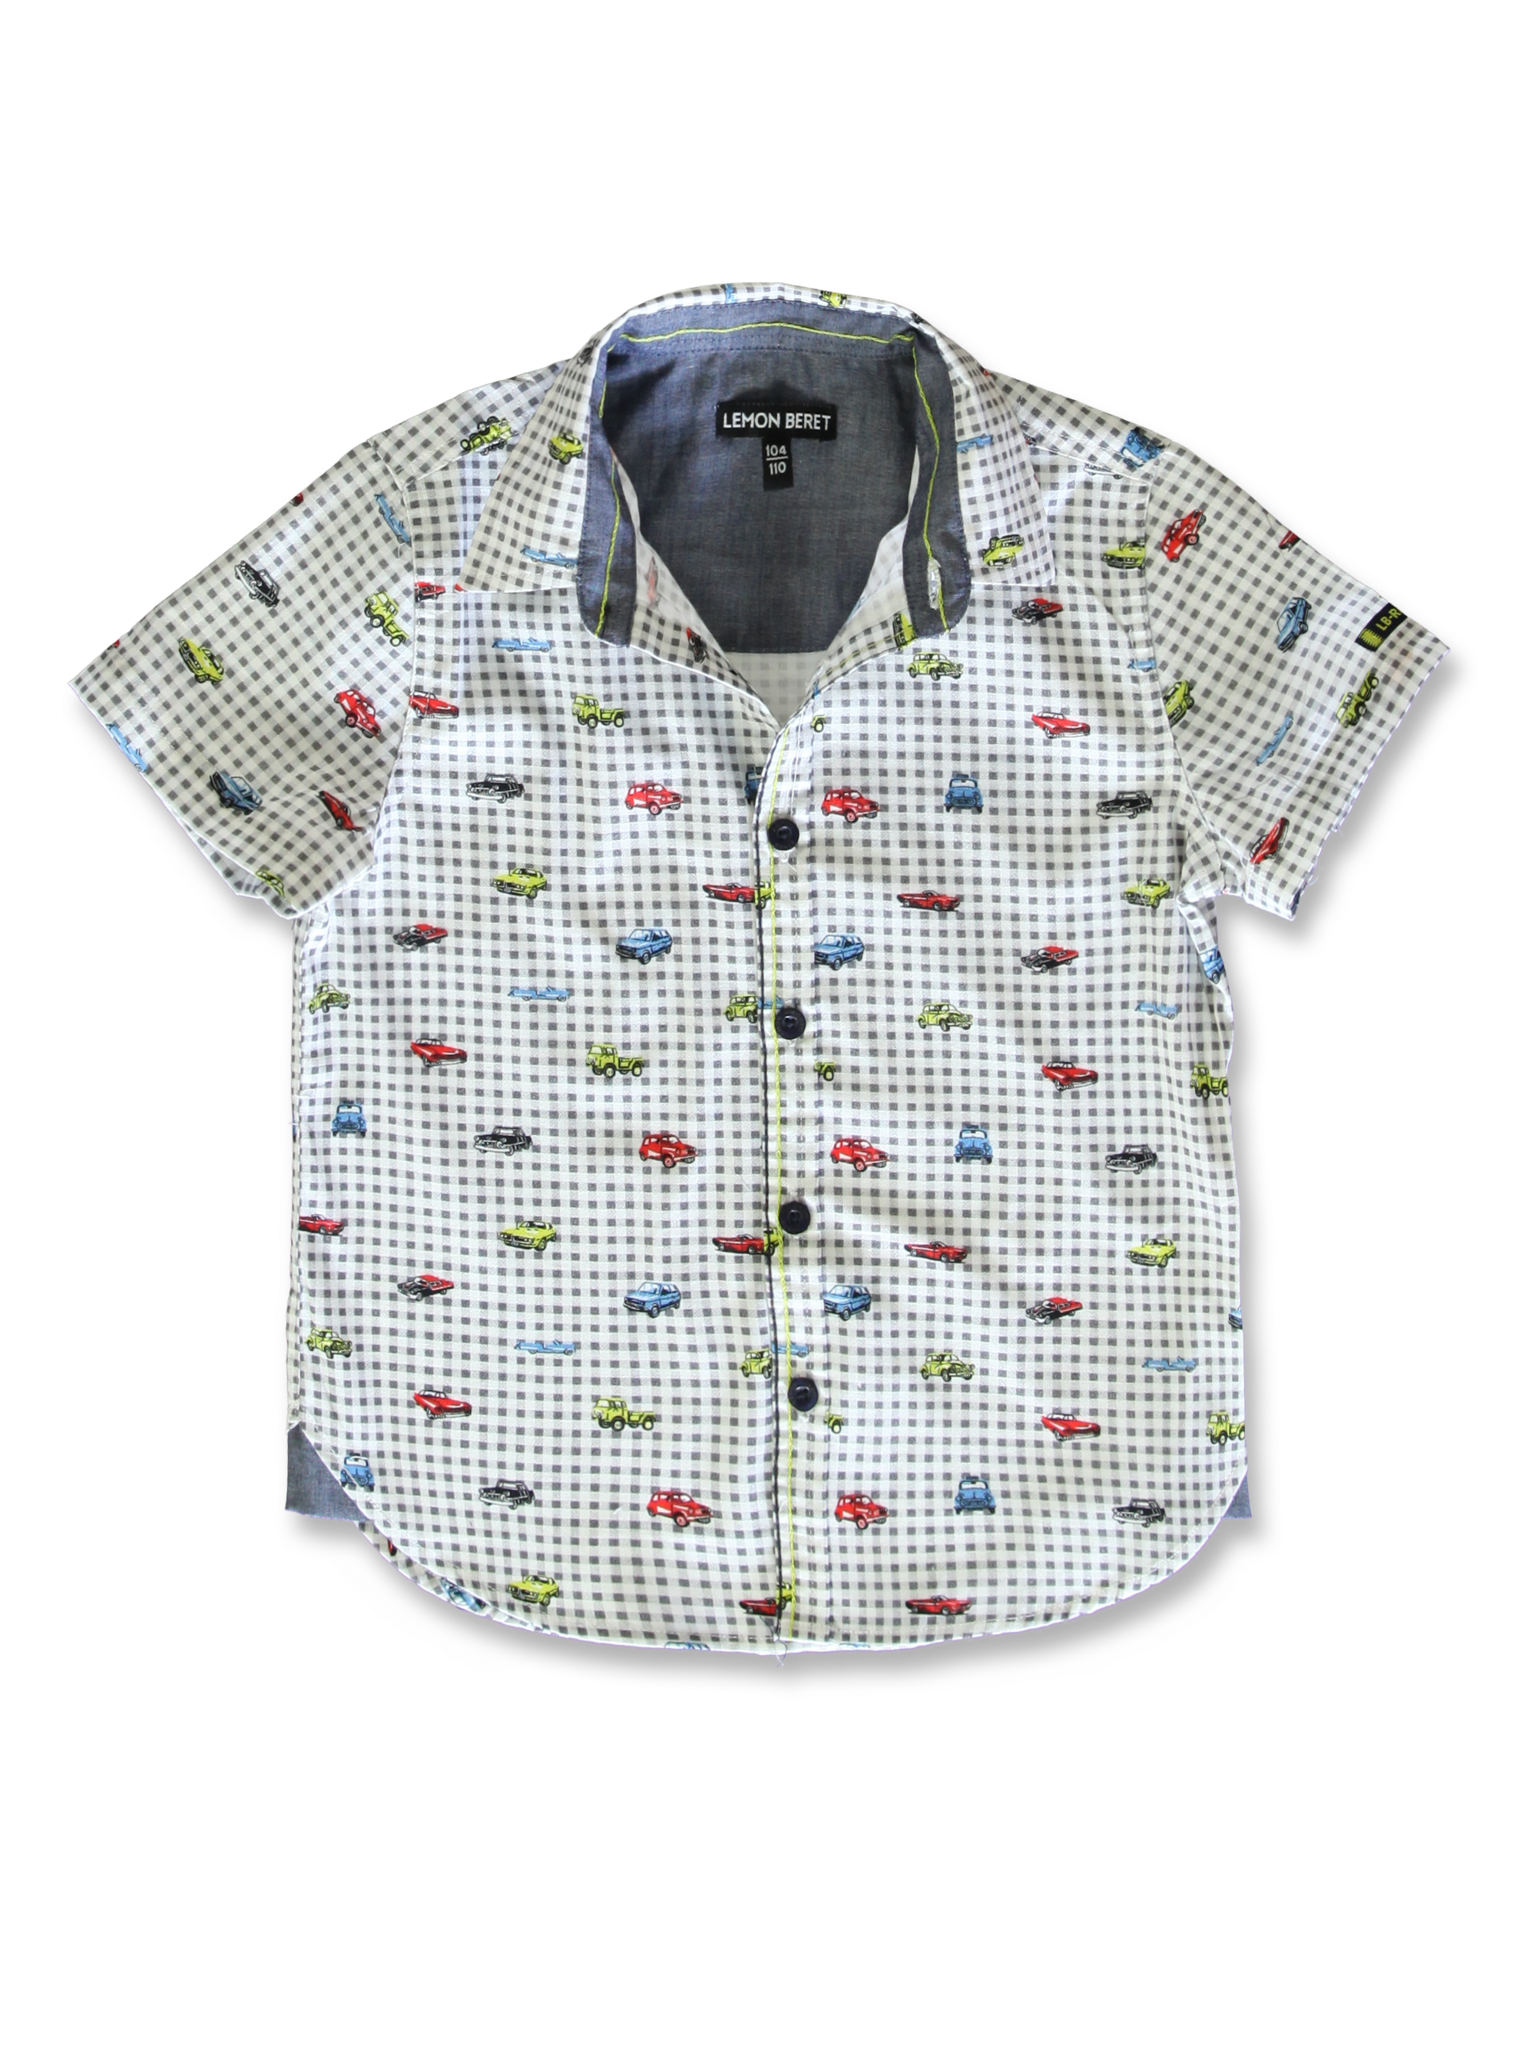 All Brands | Summerproducts Small Boys | Shirt | 10 pcs/box